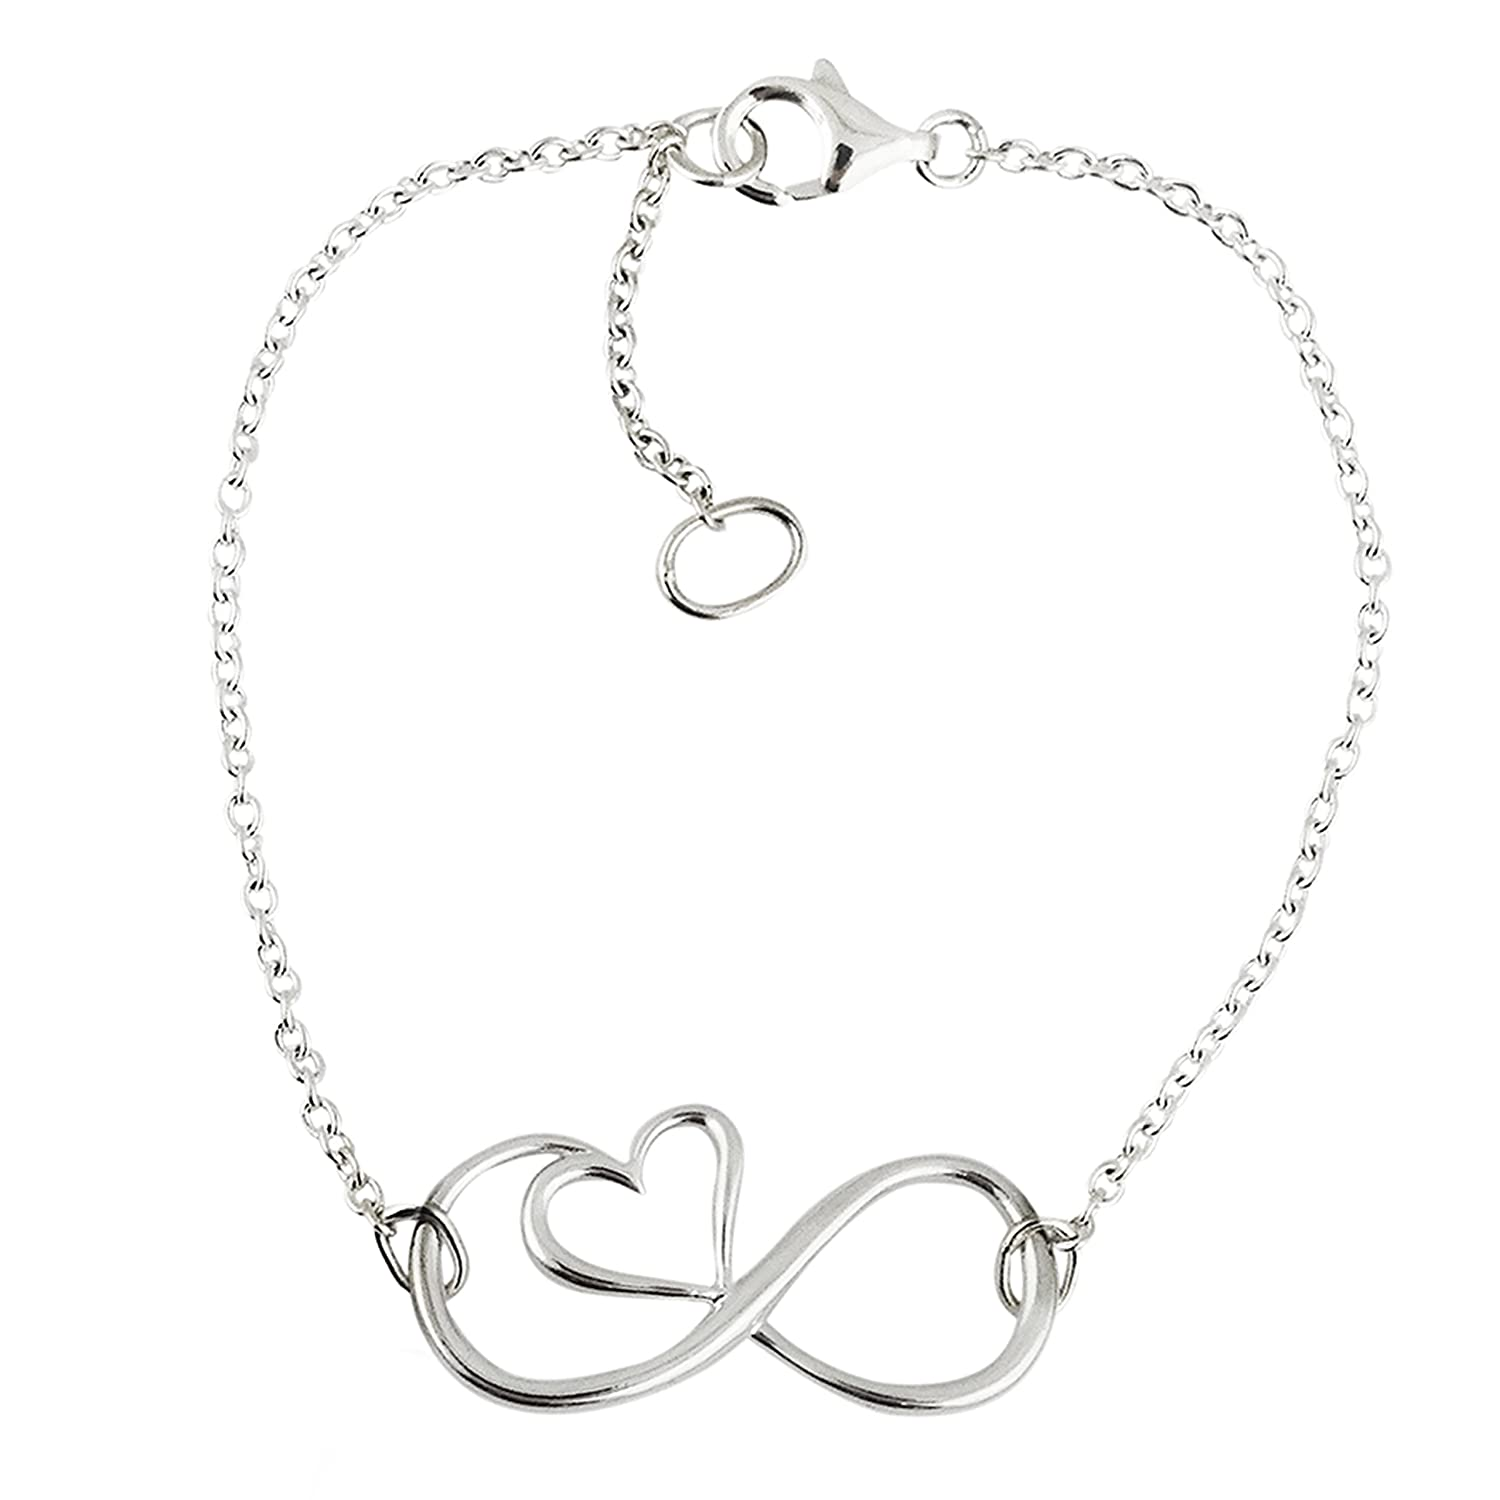 FashionJunkie4Life 8 Sterling Silver Infinity Sign with Heart Chain Link Bracelet